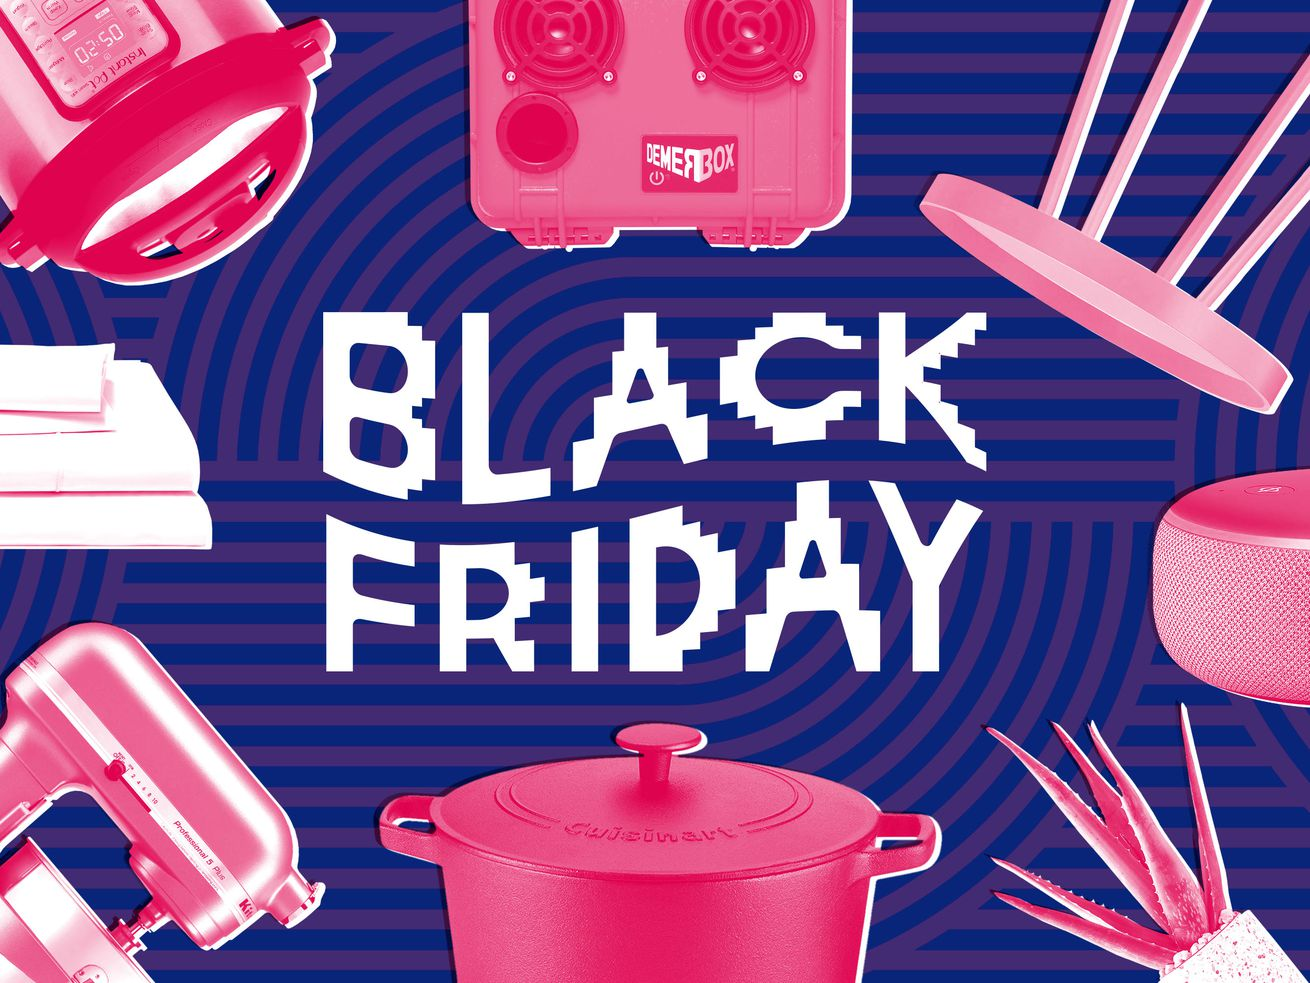 Shop the best early Black Friday deals at Amazon, Target, and more